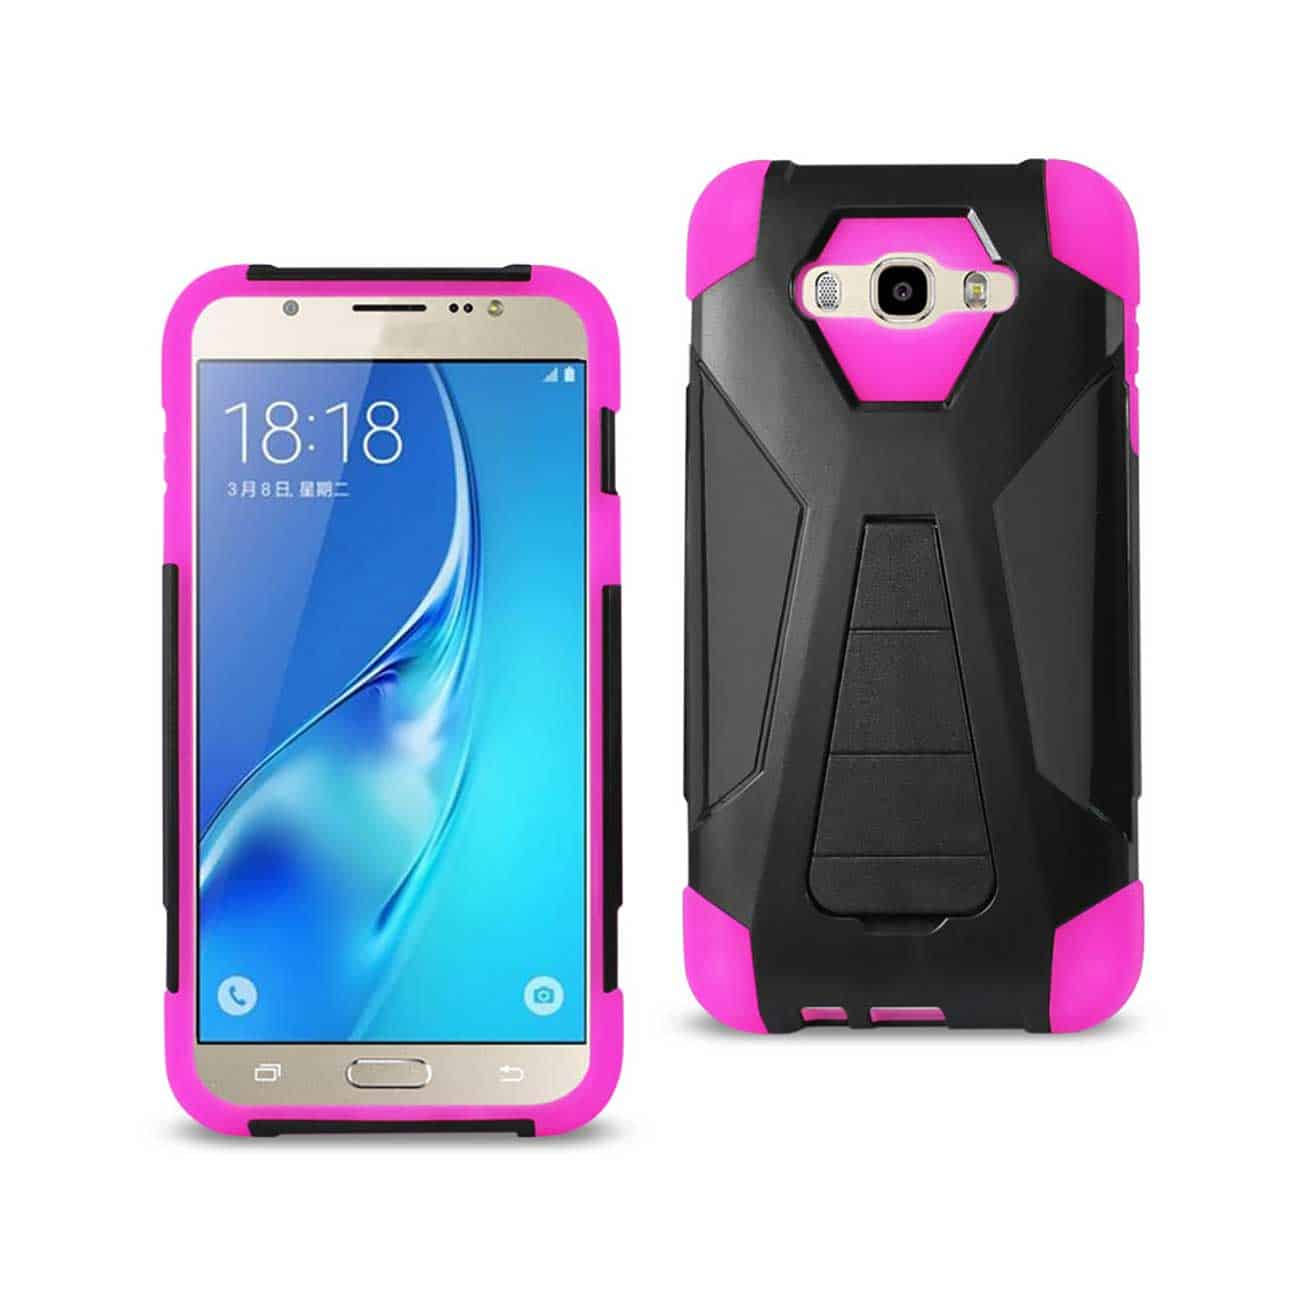 SAMSUNG GALAXY J7 (2016) HYBRID HEAVY DUTY CASE WITH KICKSTAND IN HOT PINK BLACK